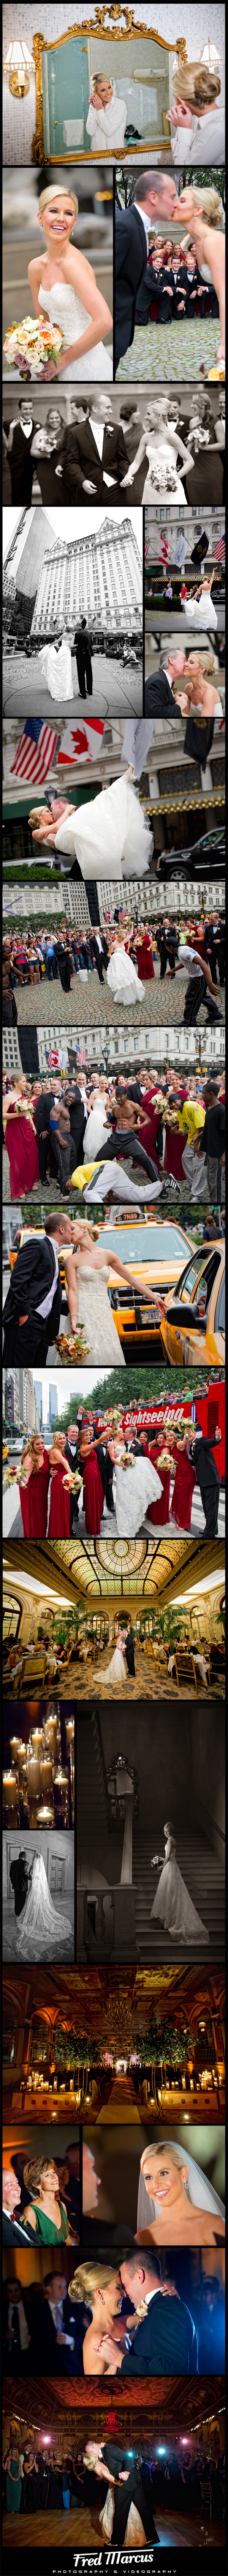 A Perfect Wedding at the Plaza Hotel